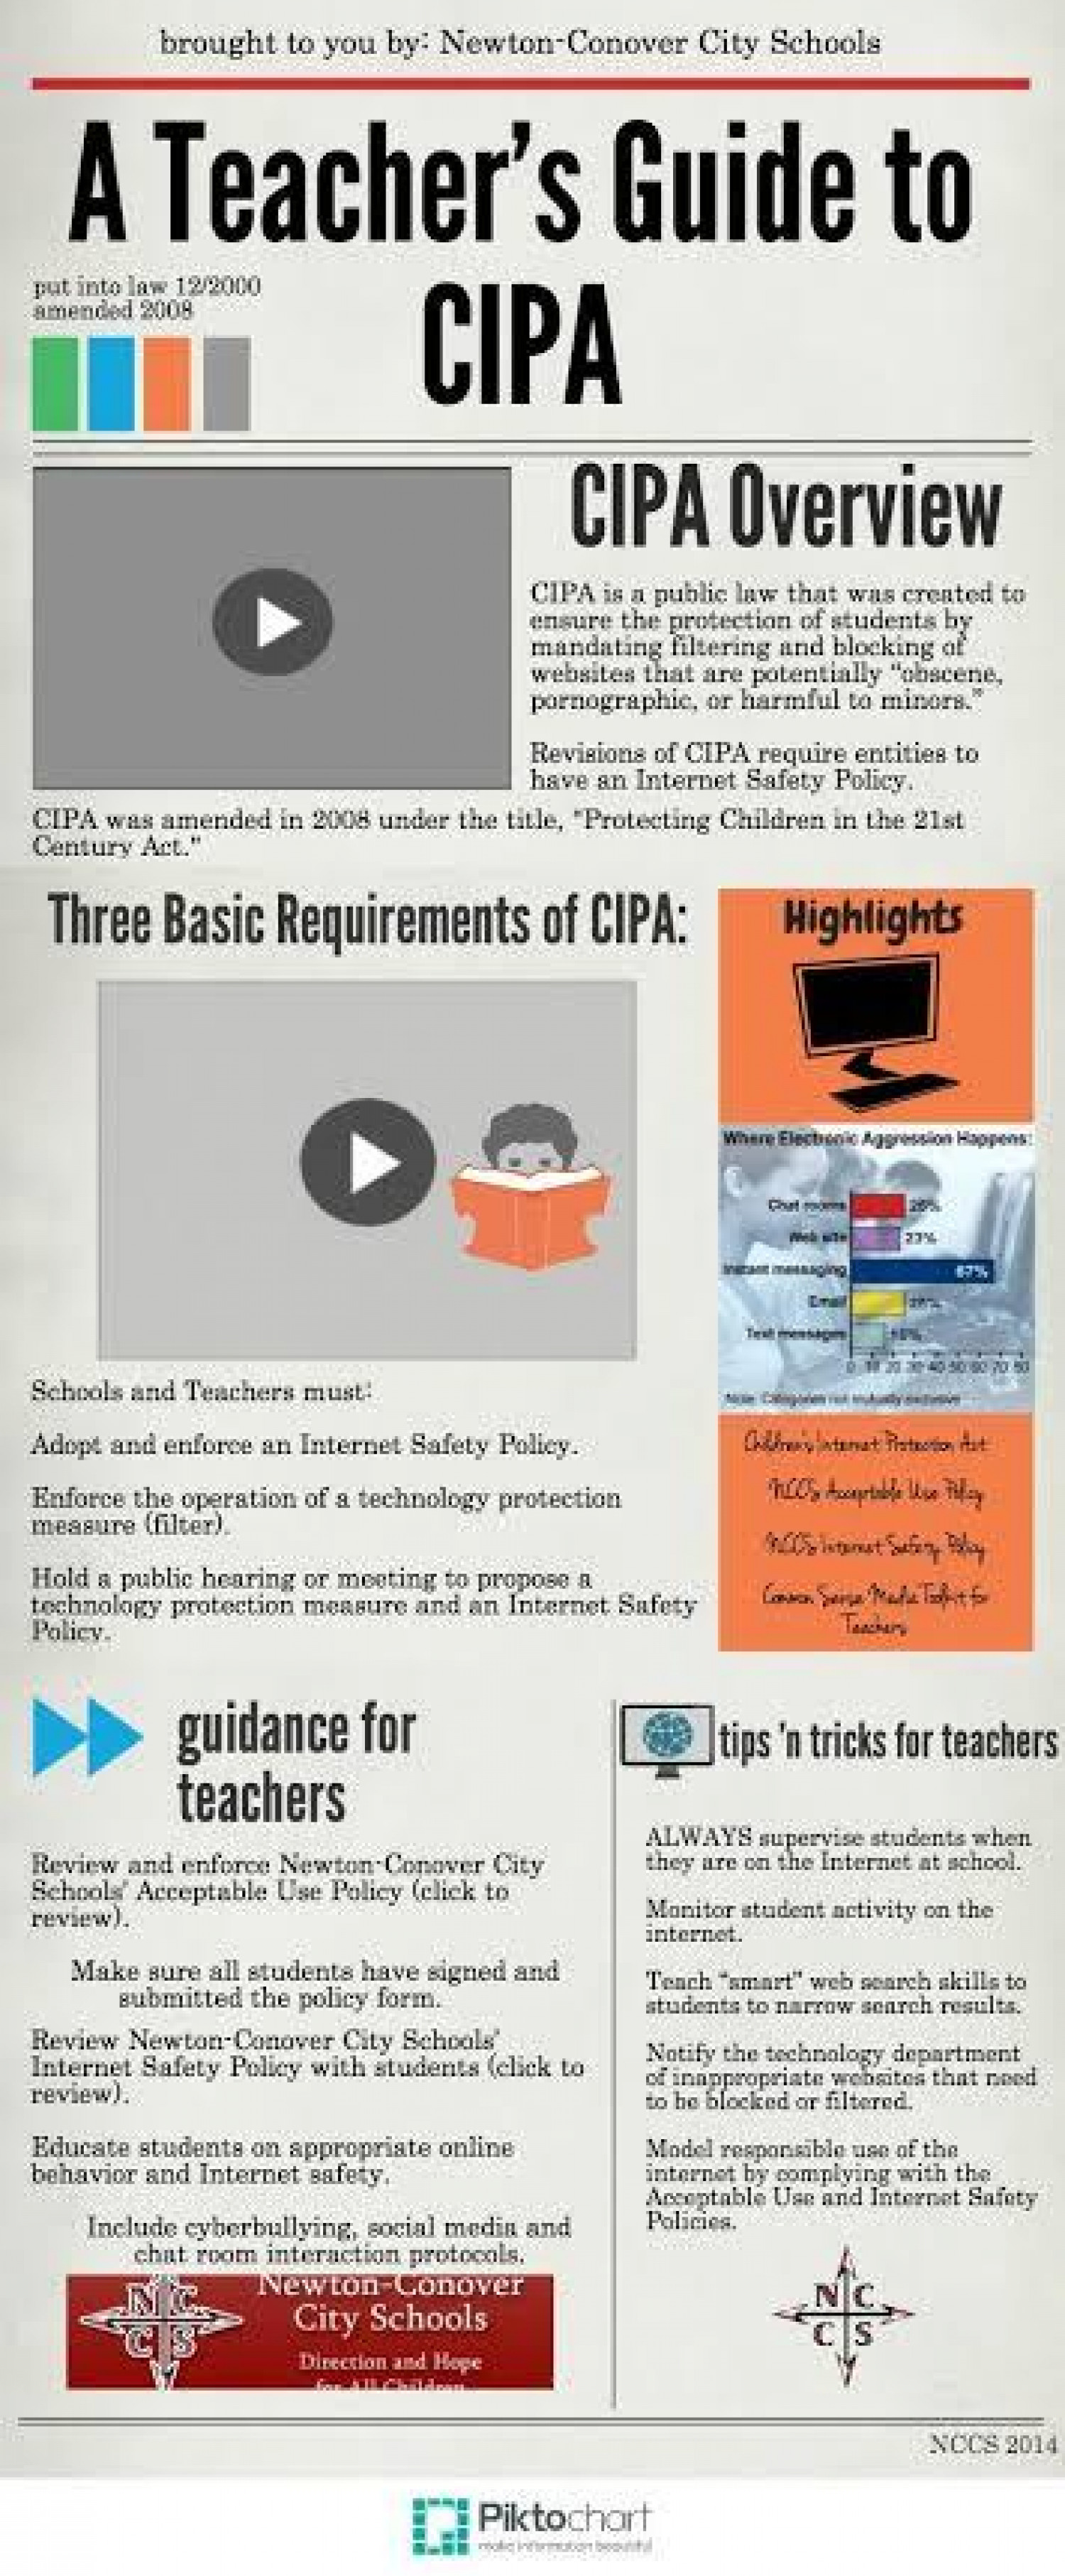 How NuEduSEC Can Help with CIPA Compliance? Infographic